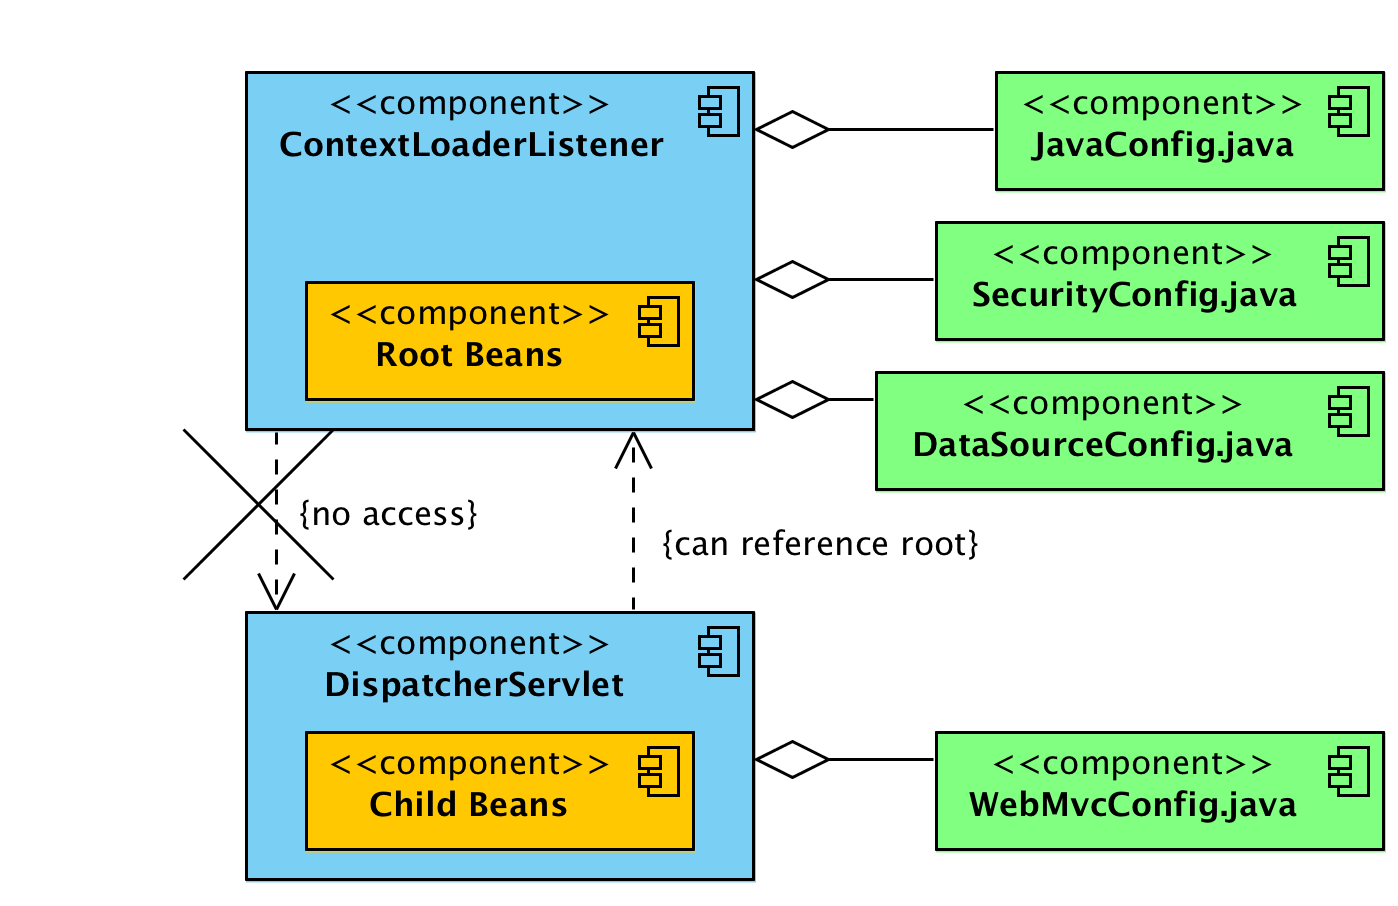 ContextLoaderListener vs DispatcherServlet